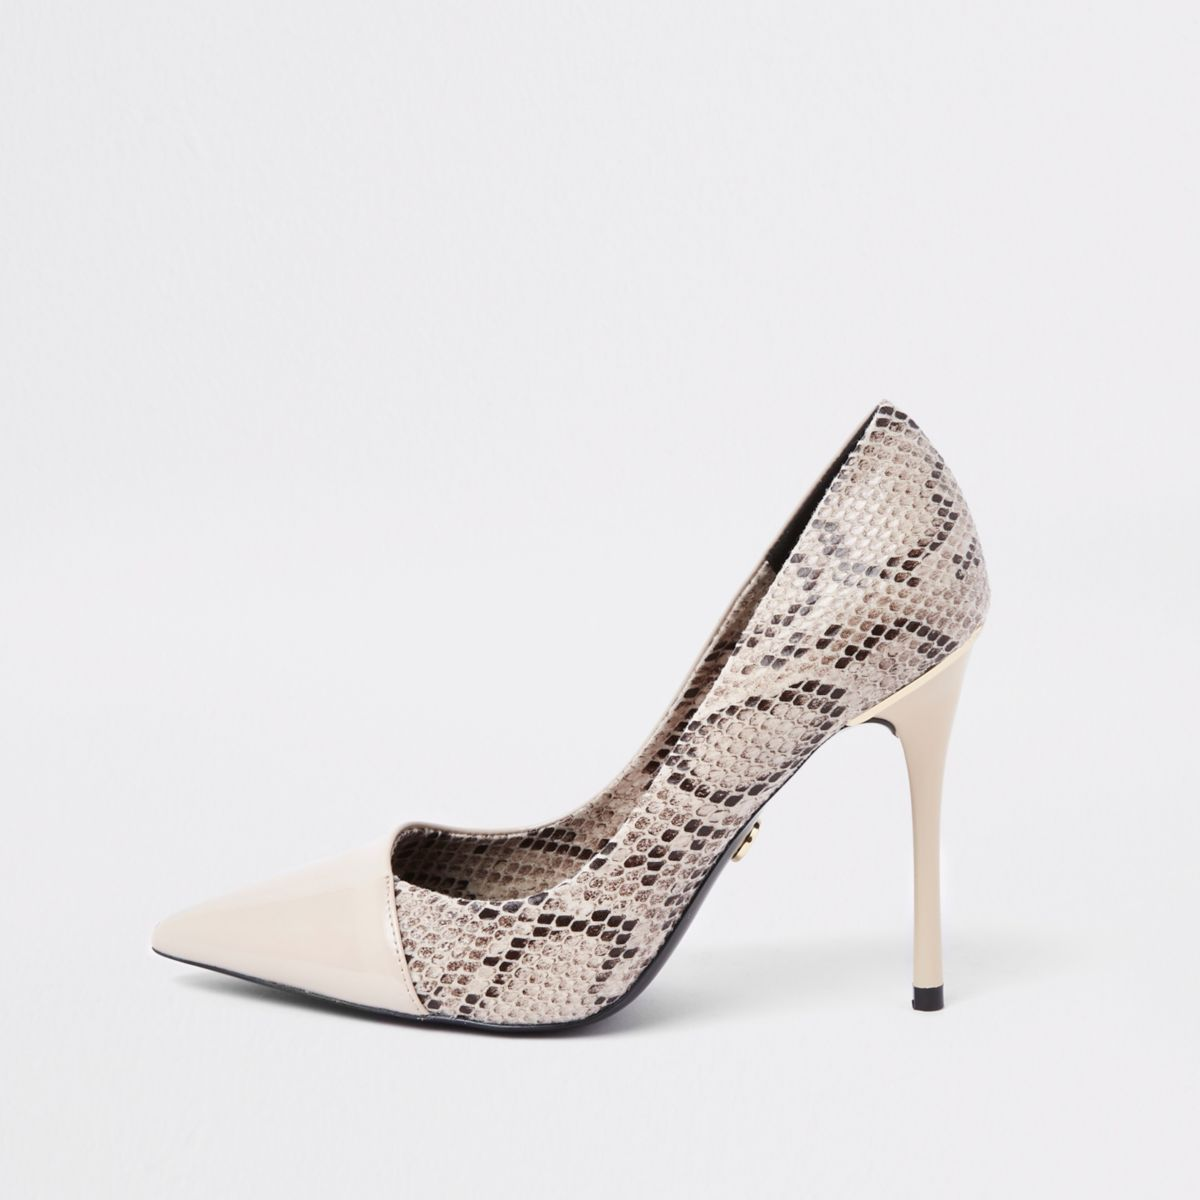 Beige snake skin wrap around pumps